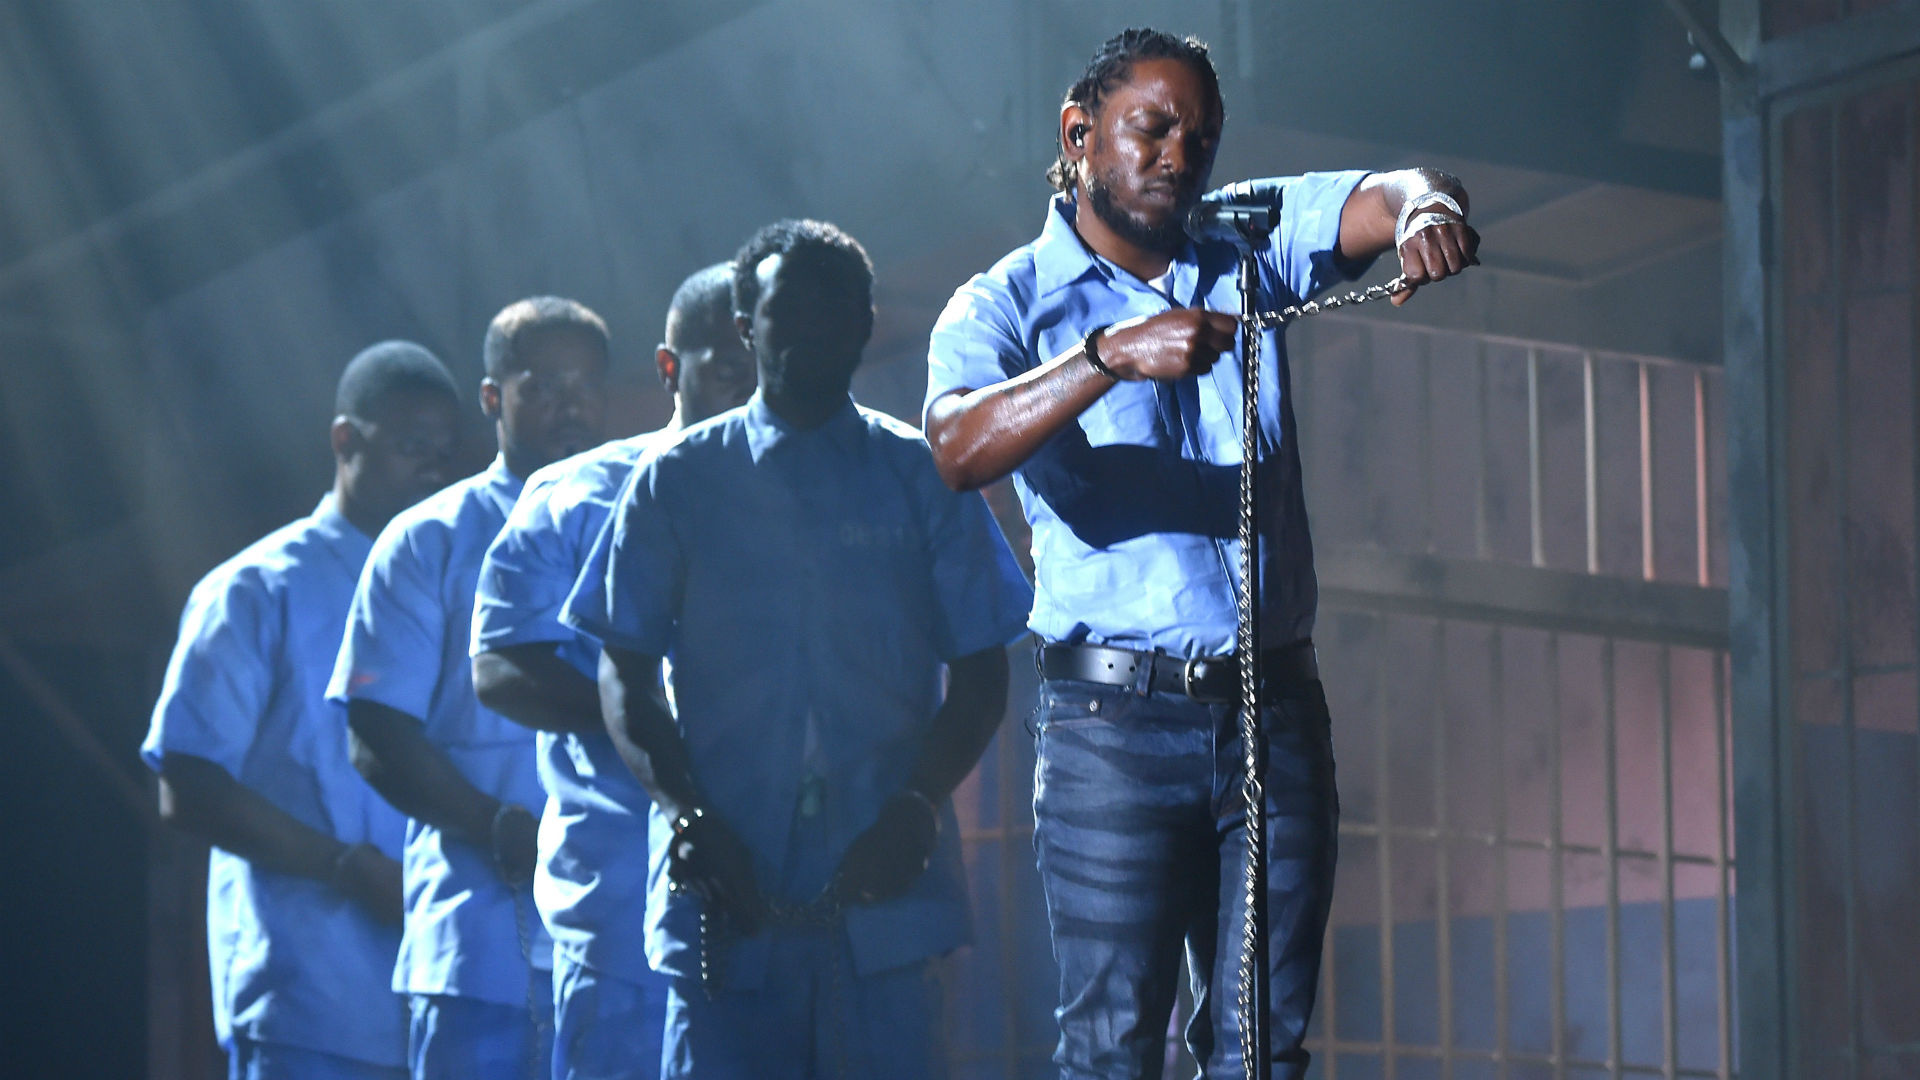 Kendrick Lamar at the 2016 Grammys (Getty Images)